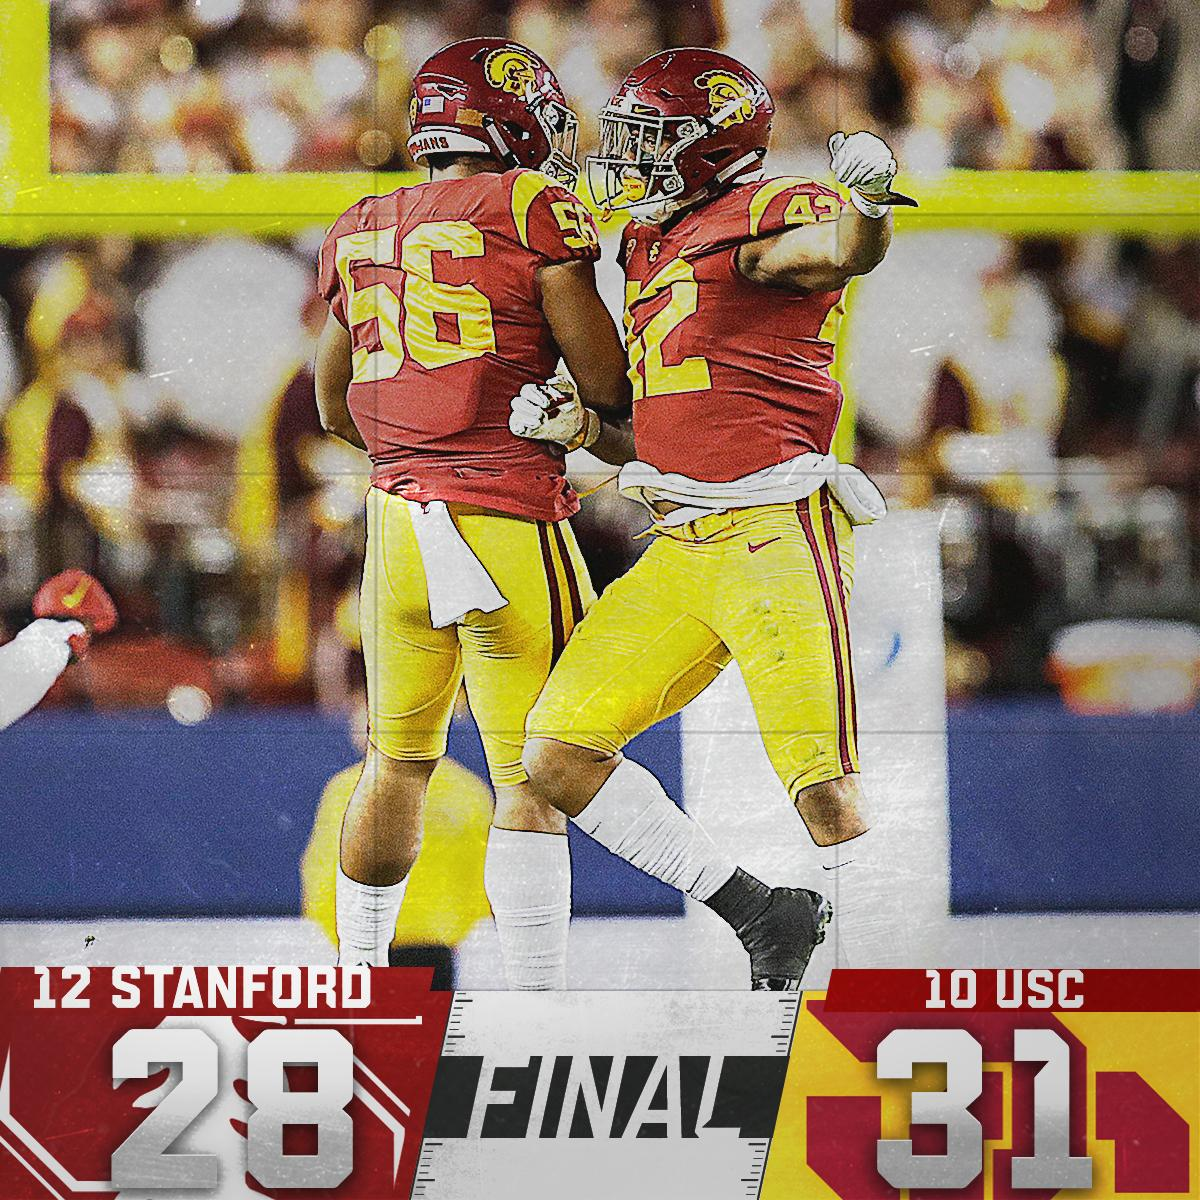 Fight on!   USC takes down Stanford to win the Pac-12 championship game.